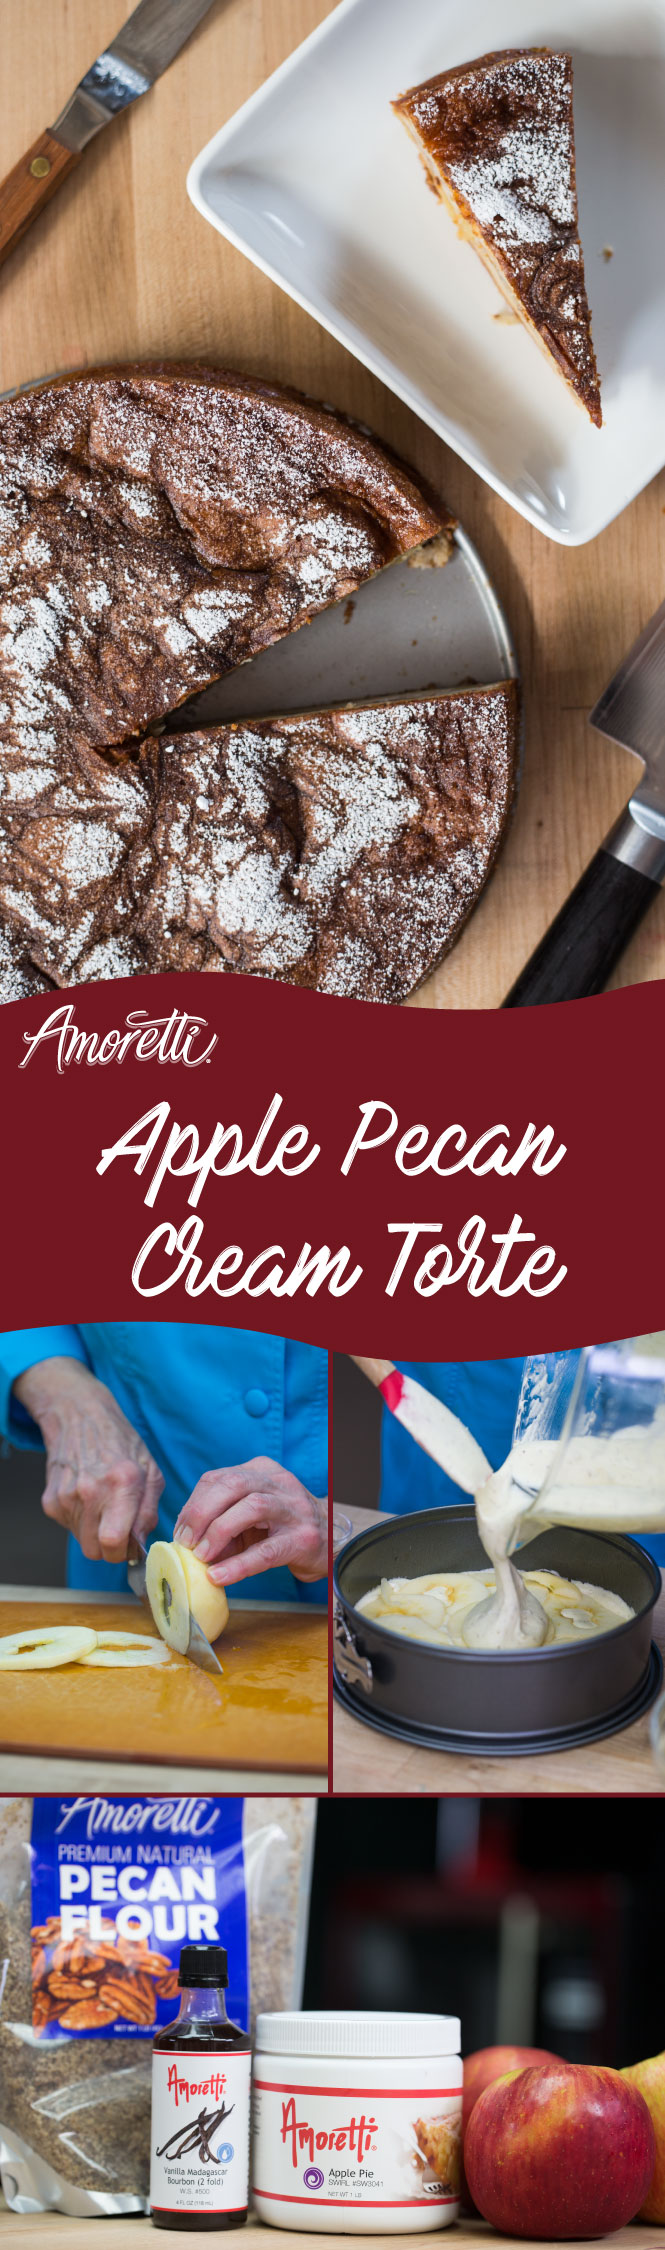 Amoretti Apple Pecan Cream Torte: This recipe is layered, super creamy, and just bursting with warm apple taste!